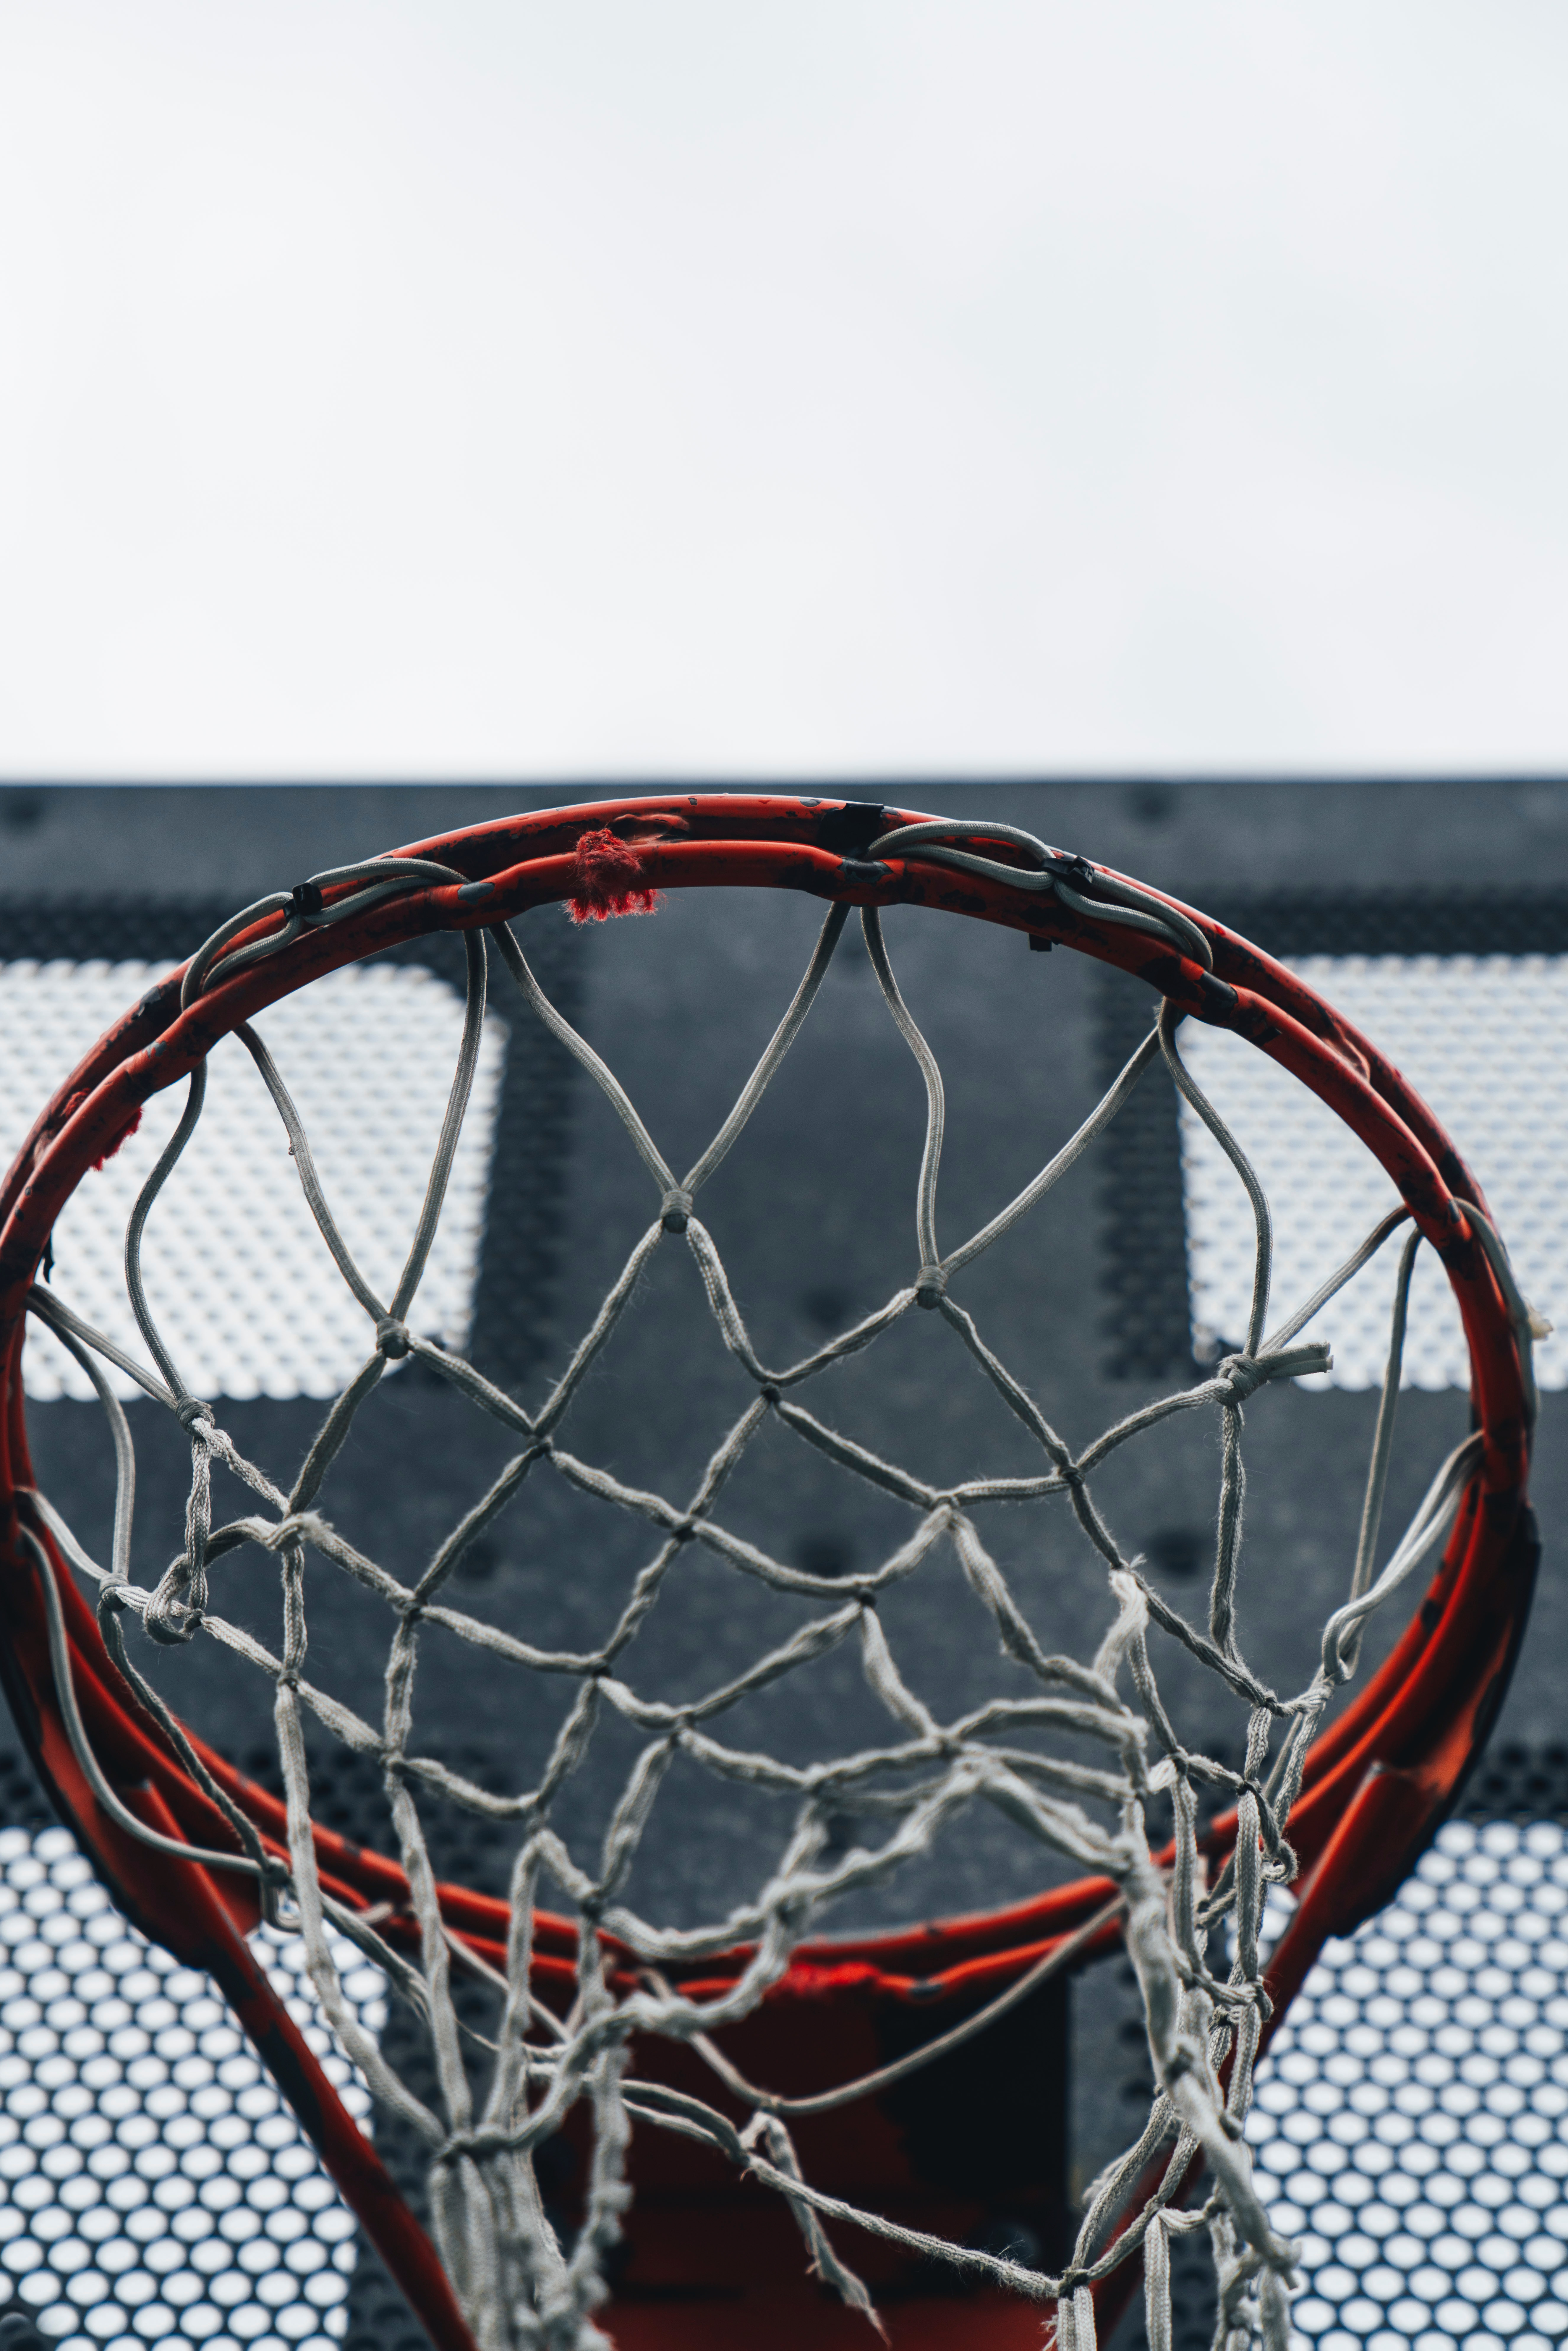 157037 Screensavers and Wallpapers Basketball for phone. Download Sports, Basketball Hoop, Basketball Ring, Basketball, Ring, Grid, Shield, Scute pictures for free